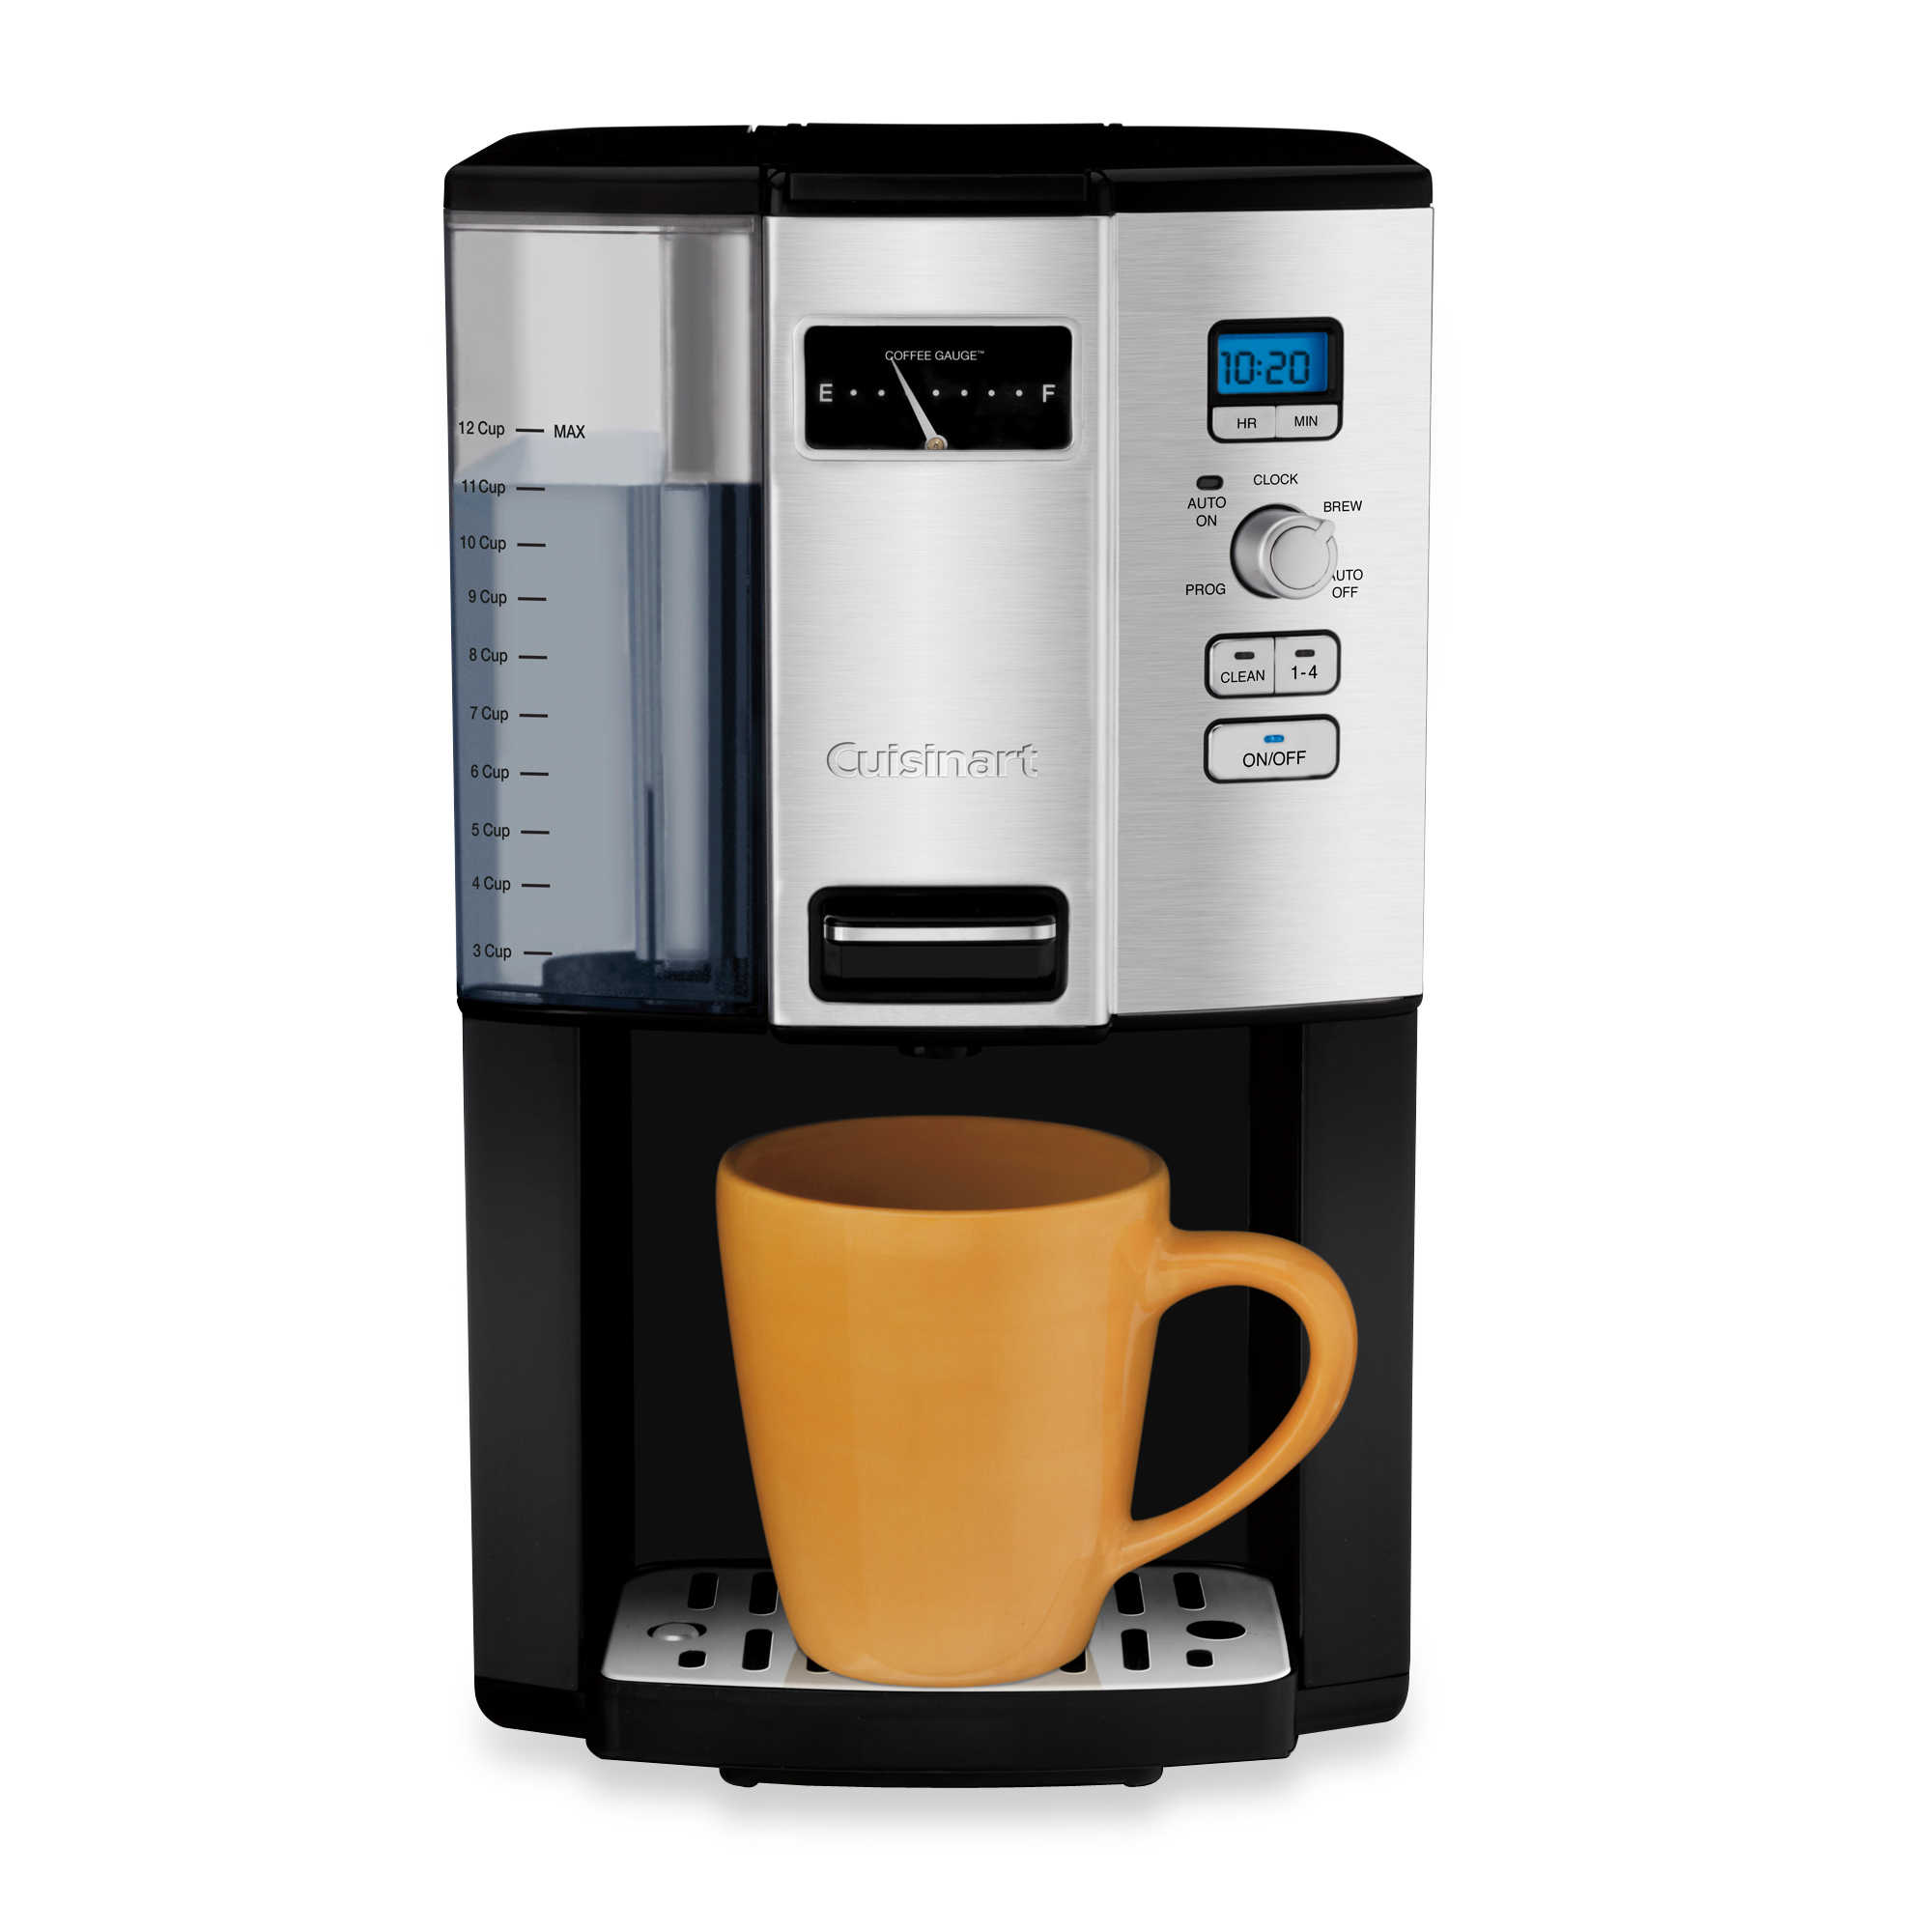 automatic coffee maker machine with a direct water line feature timer feature heat scale feature adjusting buttons feature power button feature Where Do You Put The Water In A Coffee Maker